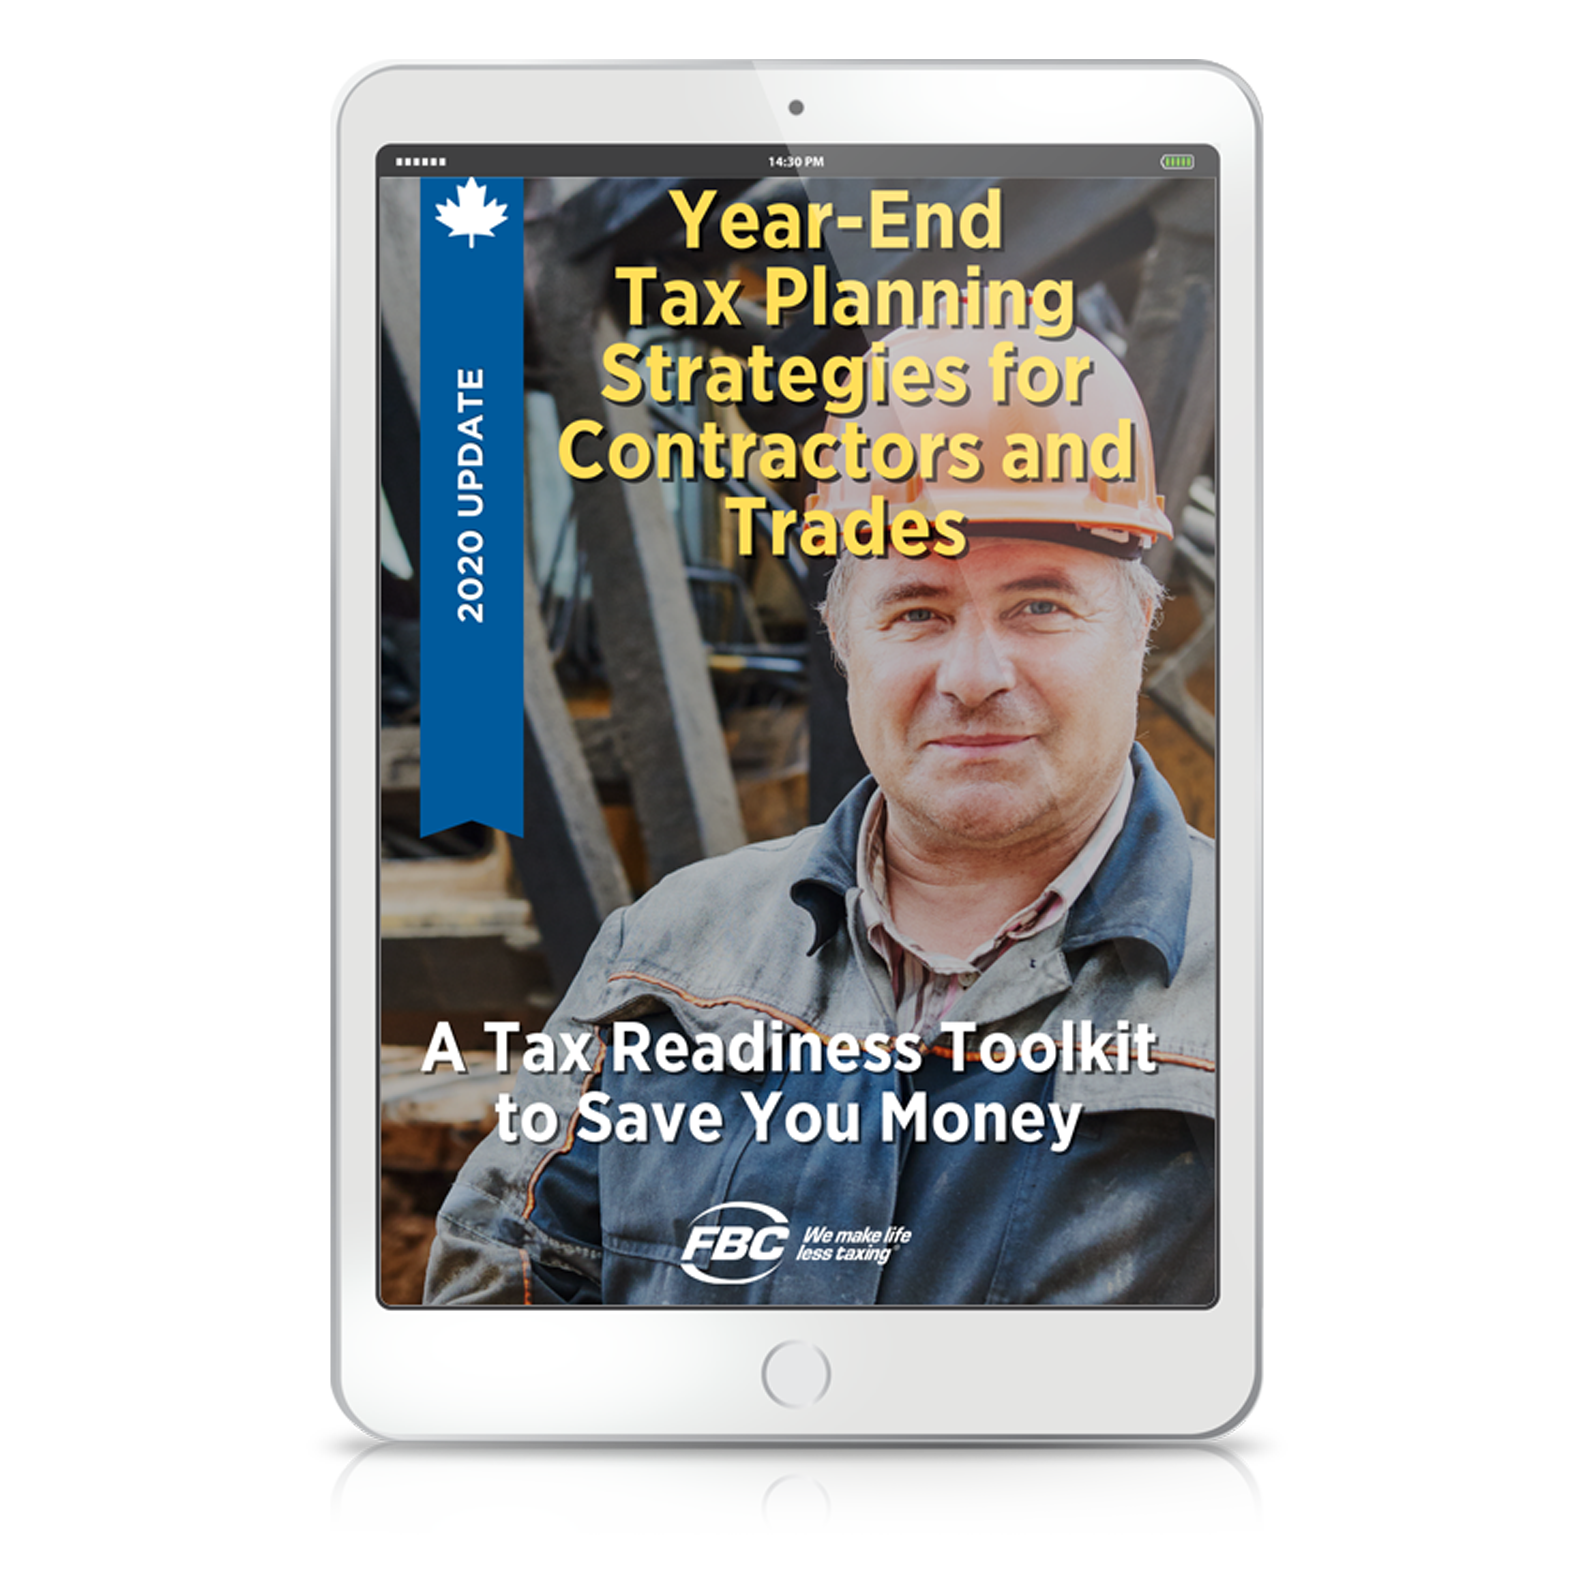 Year-End Tax Planning Strategies for Contractors